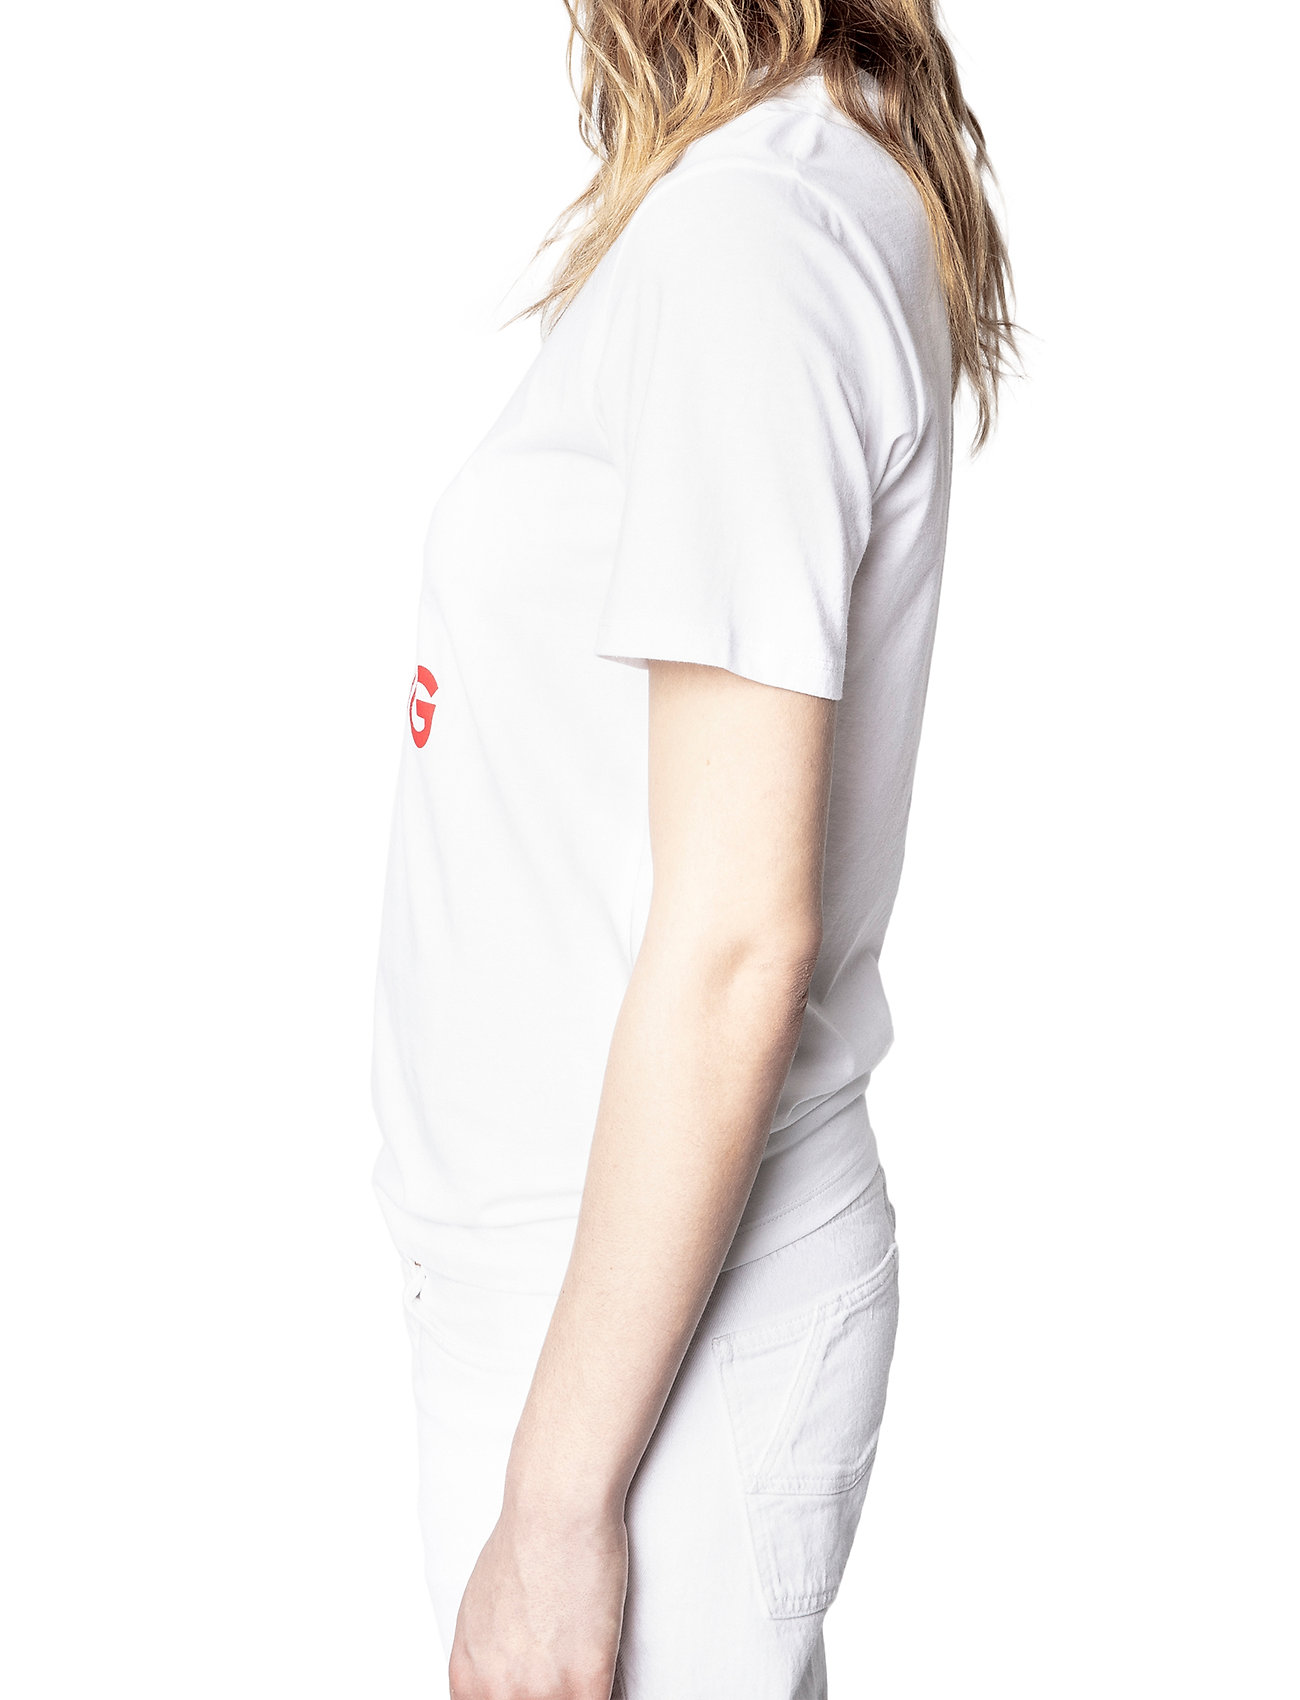 Zadig & Voltaire - BELLA COTTON INTERLOCK PRINTED T-SHIRT - t-shirts - white/red - 4